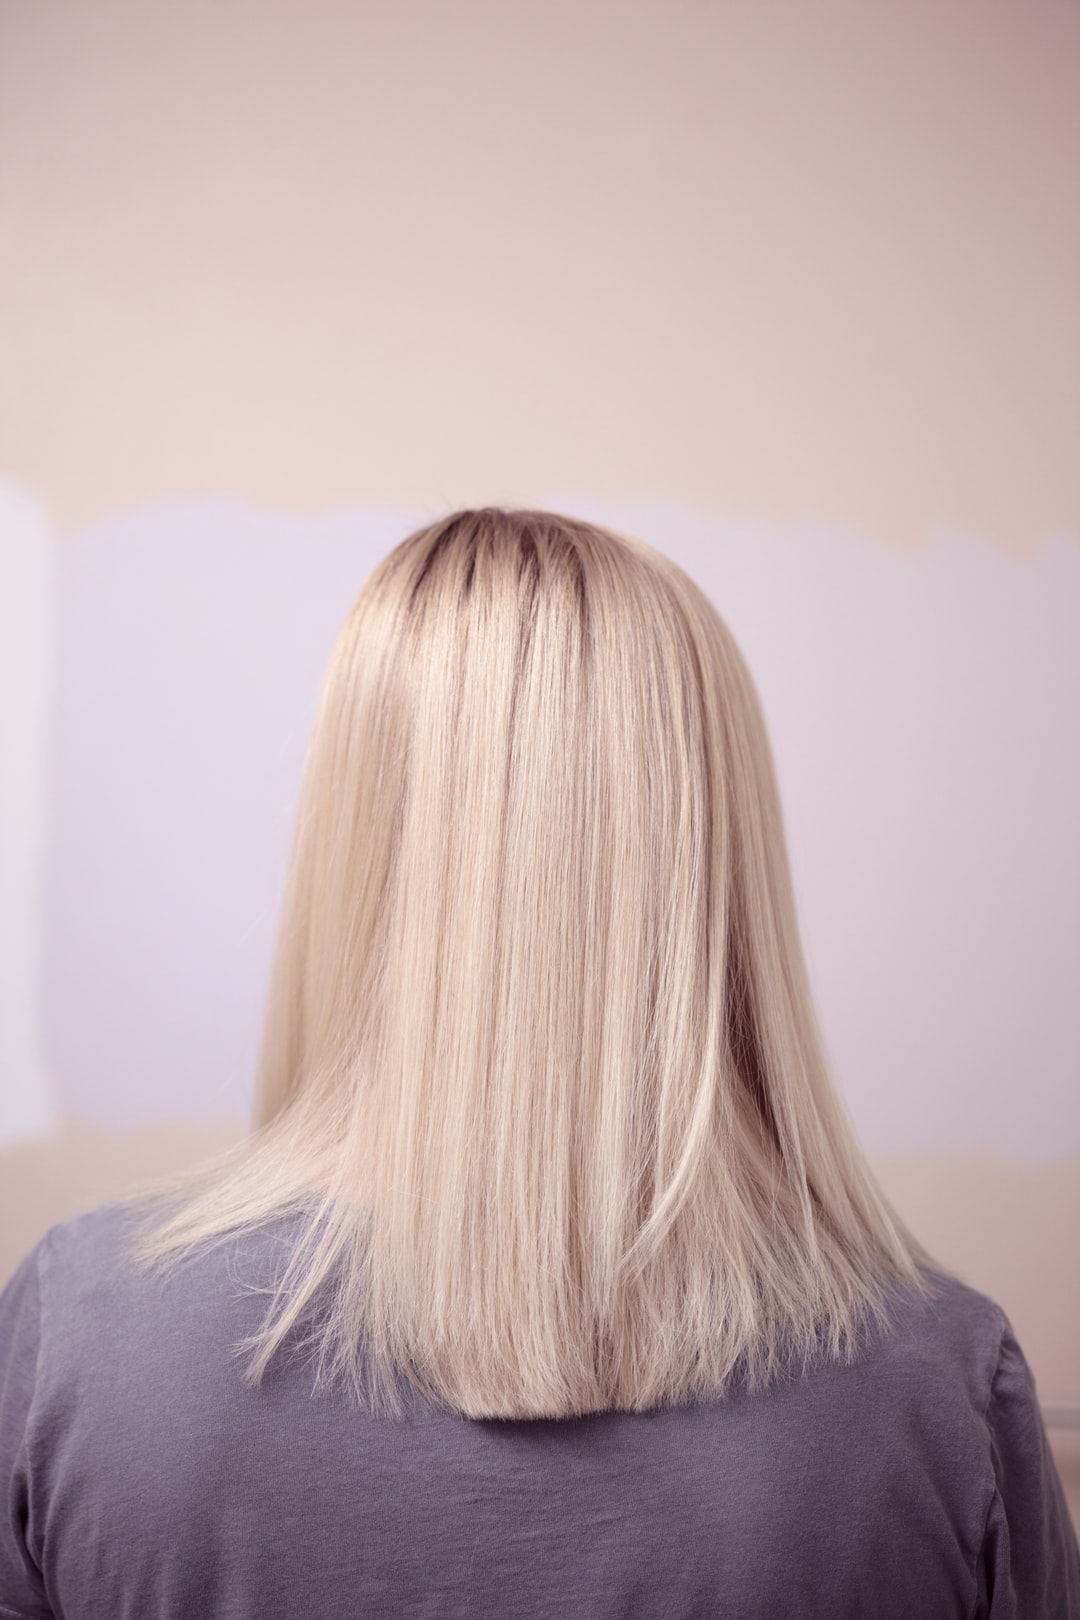 Portrait from behind of a young woman with lightened blonde hair.